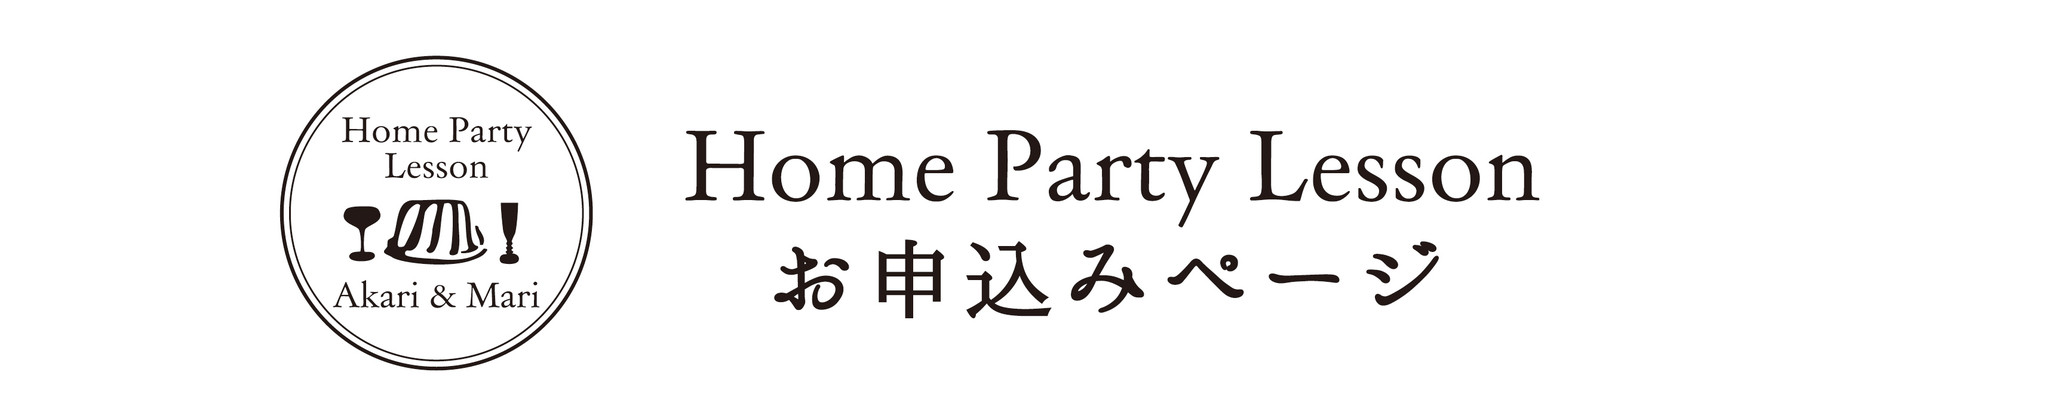 Home Party Lesson